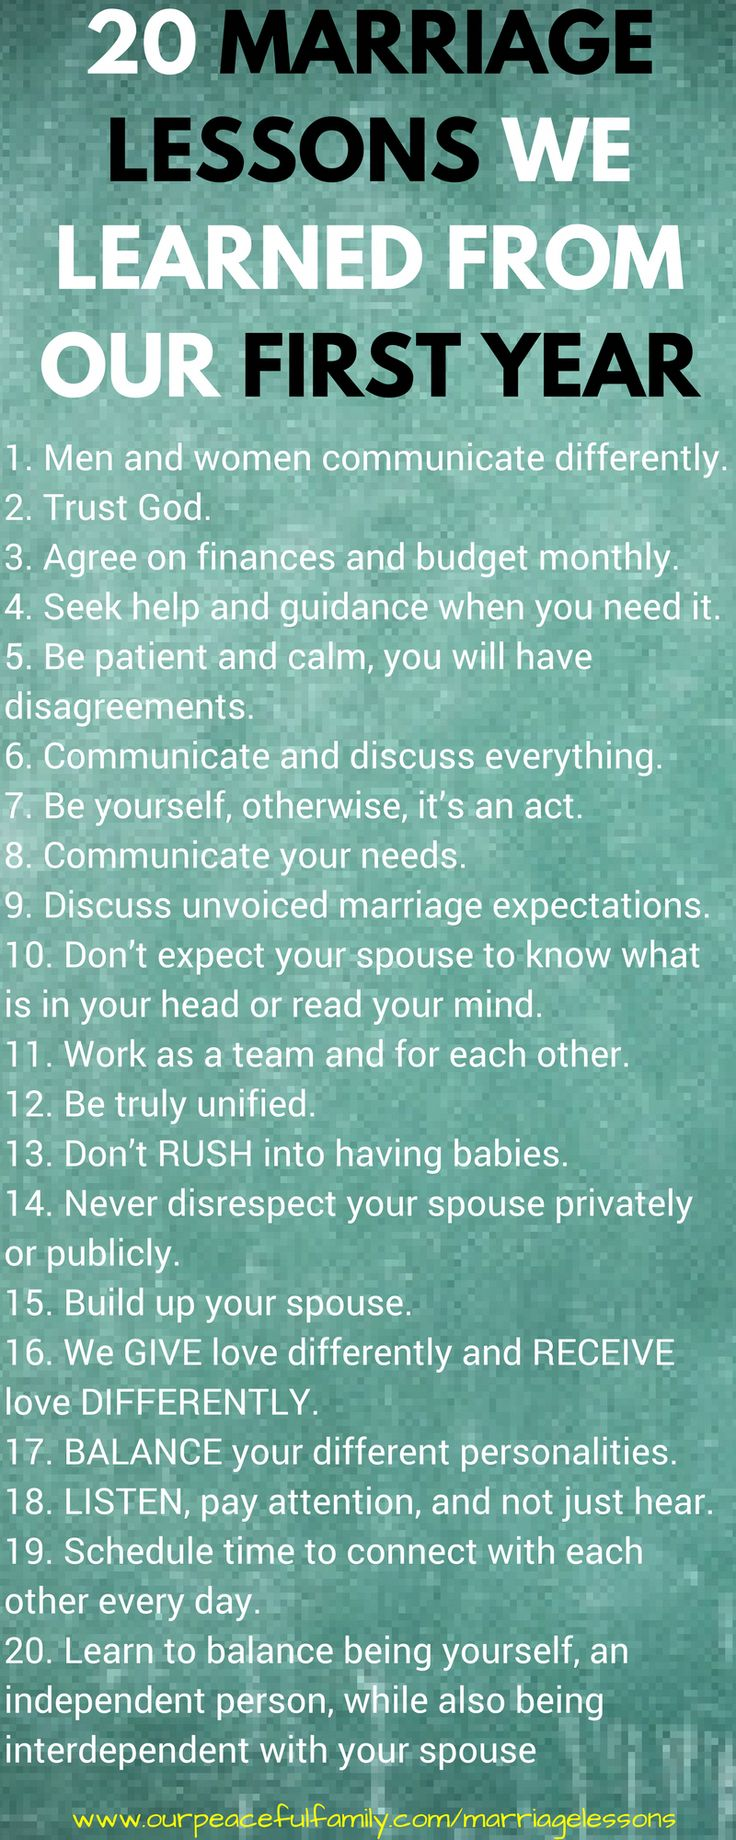 20 marriage lessons we learned from our first year,, #RelationshipFixingTruths – Stephanie Dixon